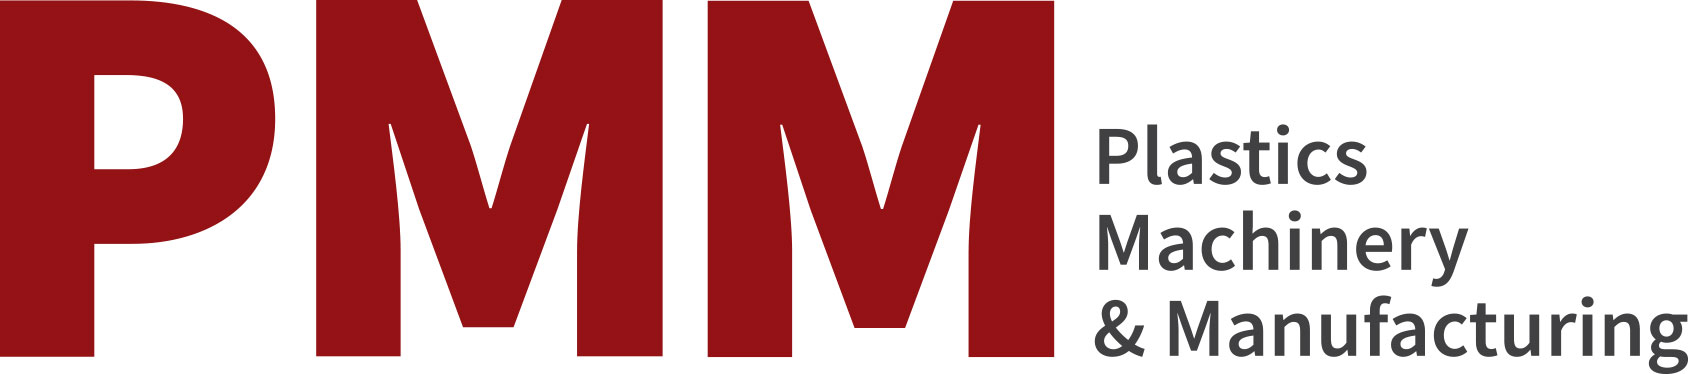 plastics machinery magazine logo